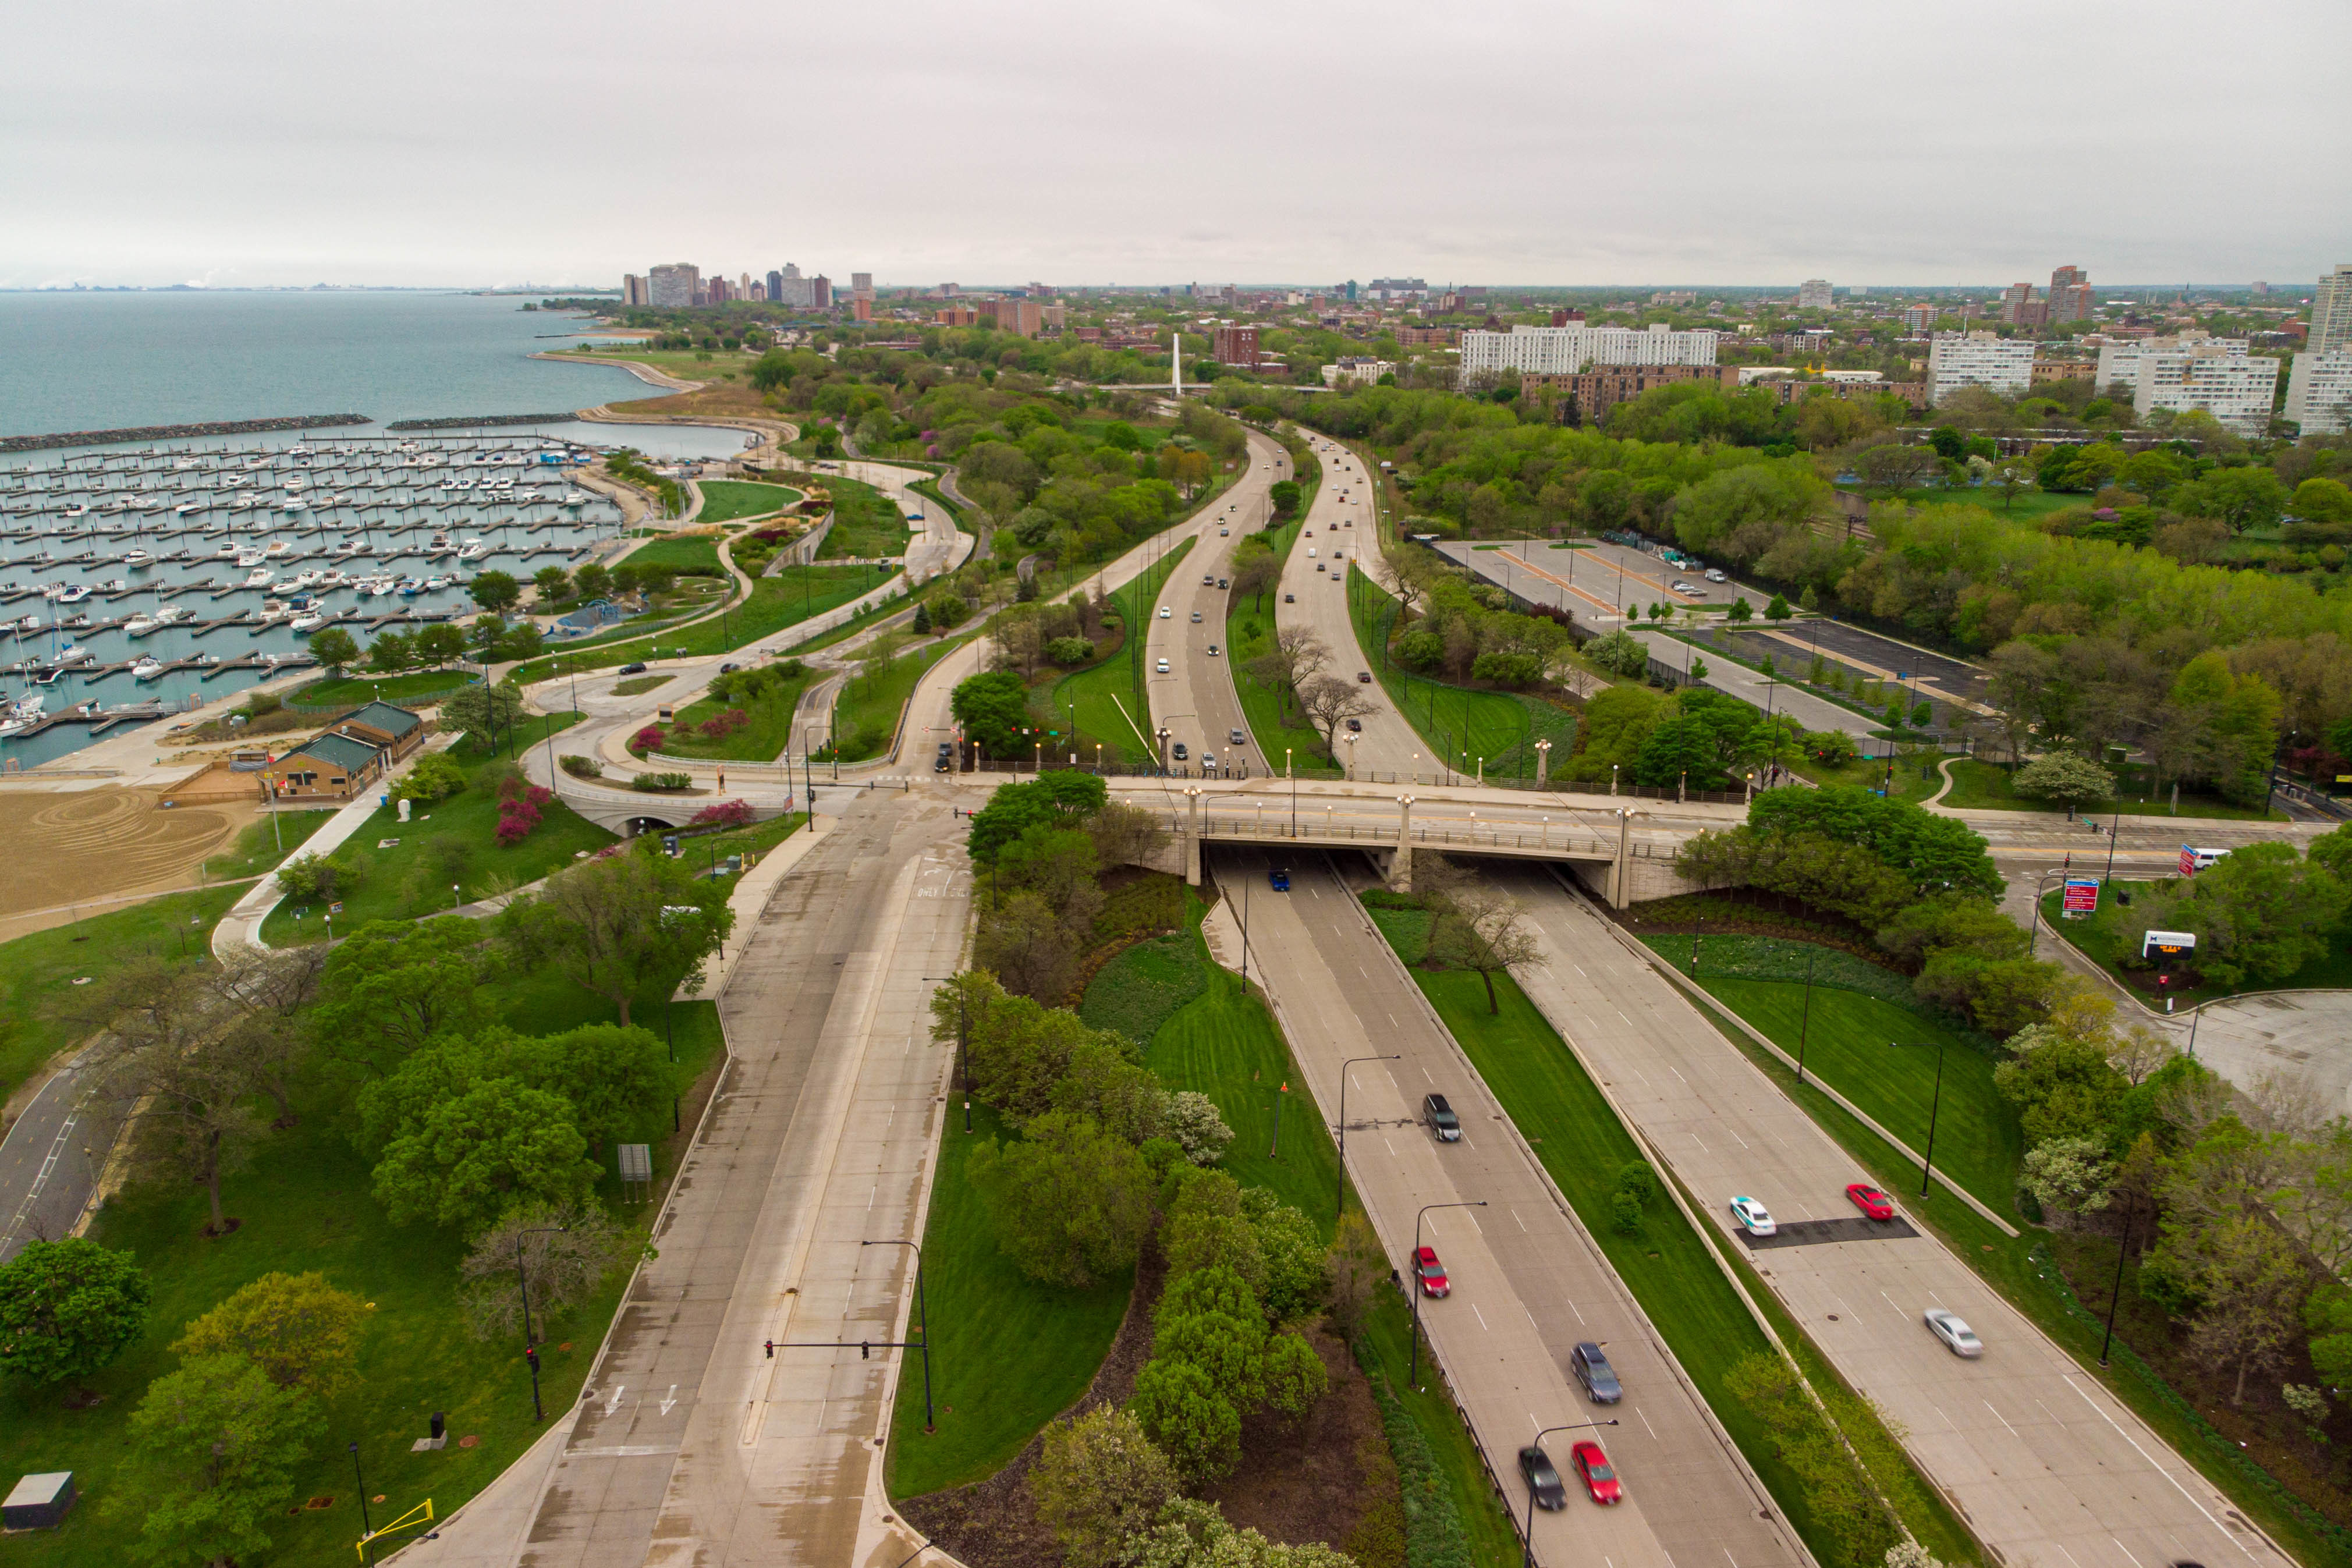 Aerial view looking south of the East 31st Street bridge crossing South Lake Shore Drive, Tuesday afternoon, May 4, 2021.